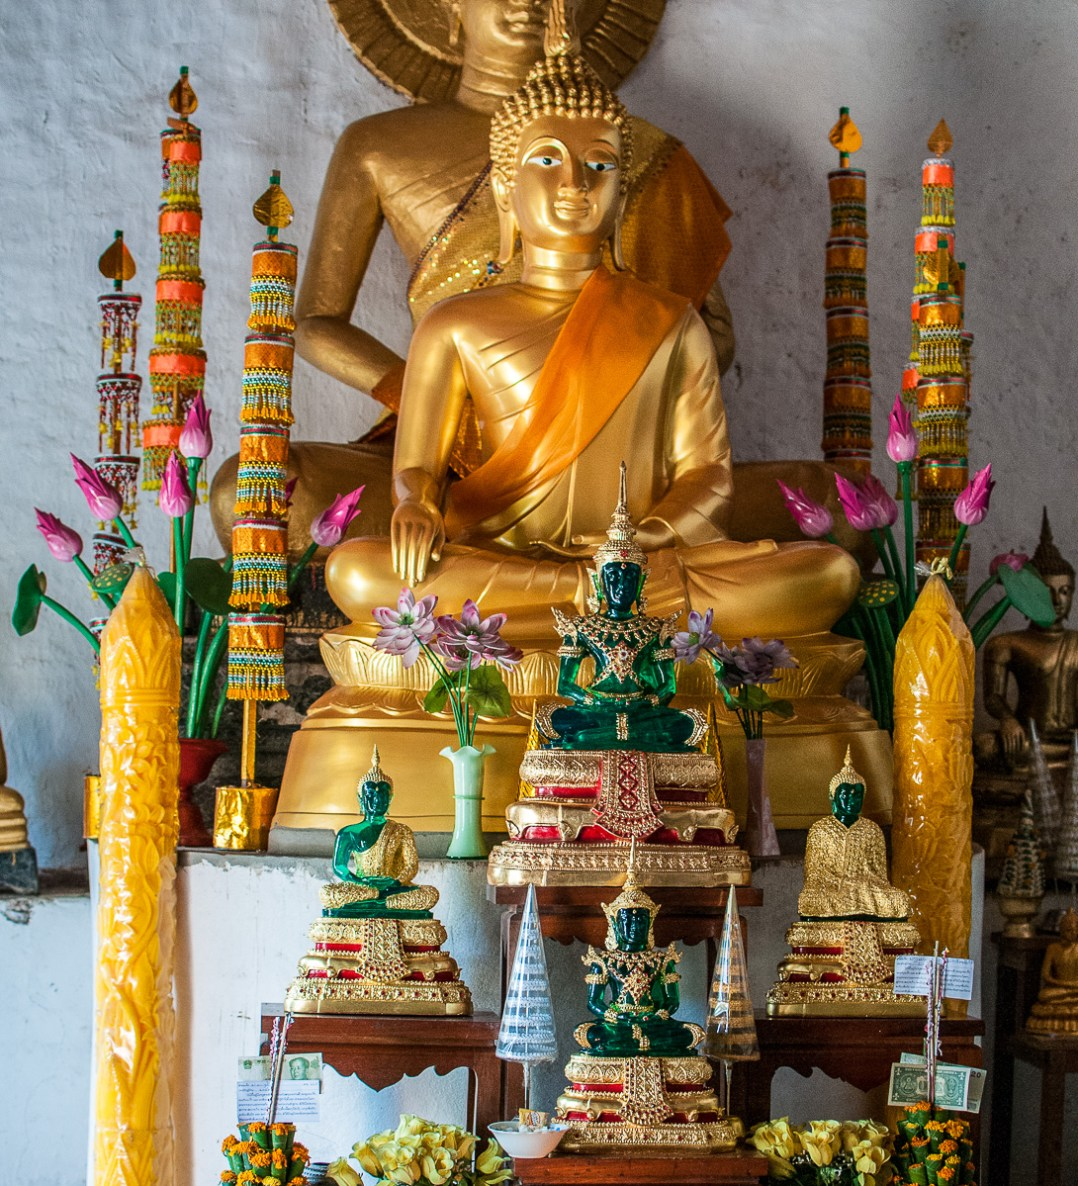 Buddhist Temple, near Laung Prabang, Laos